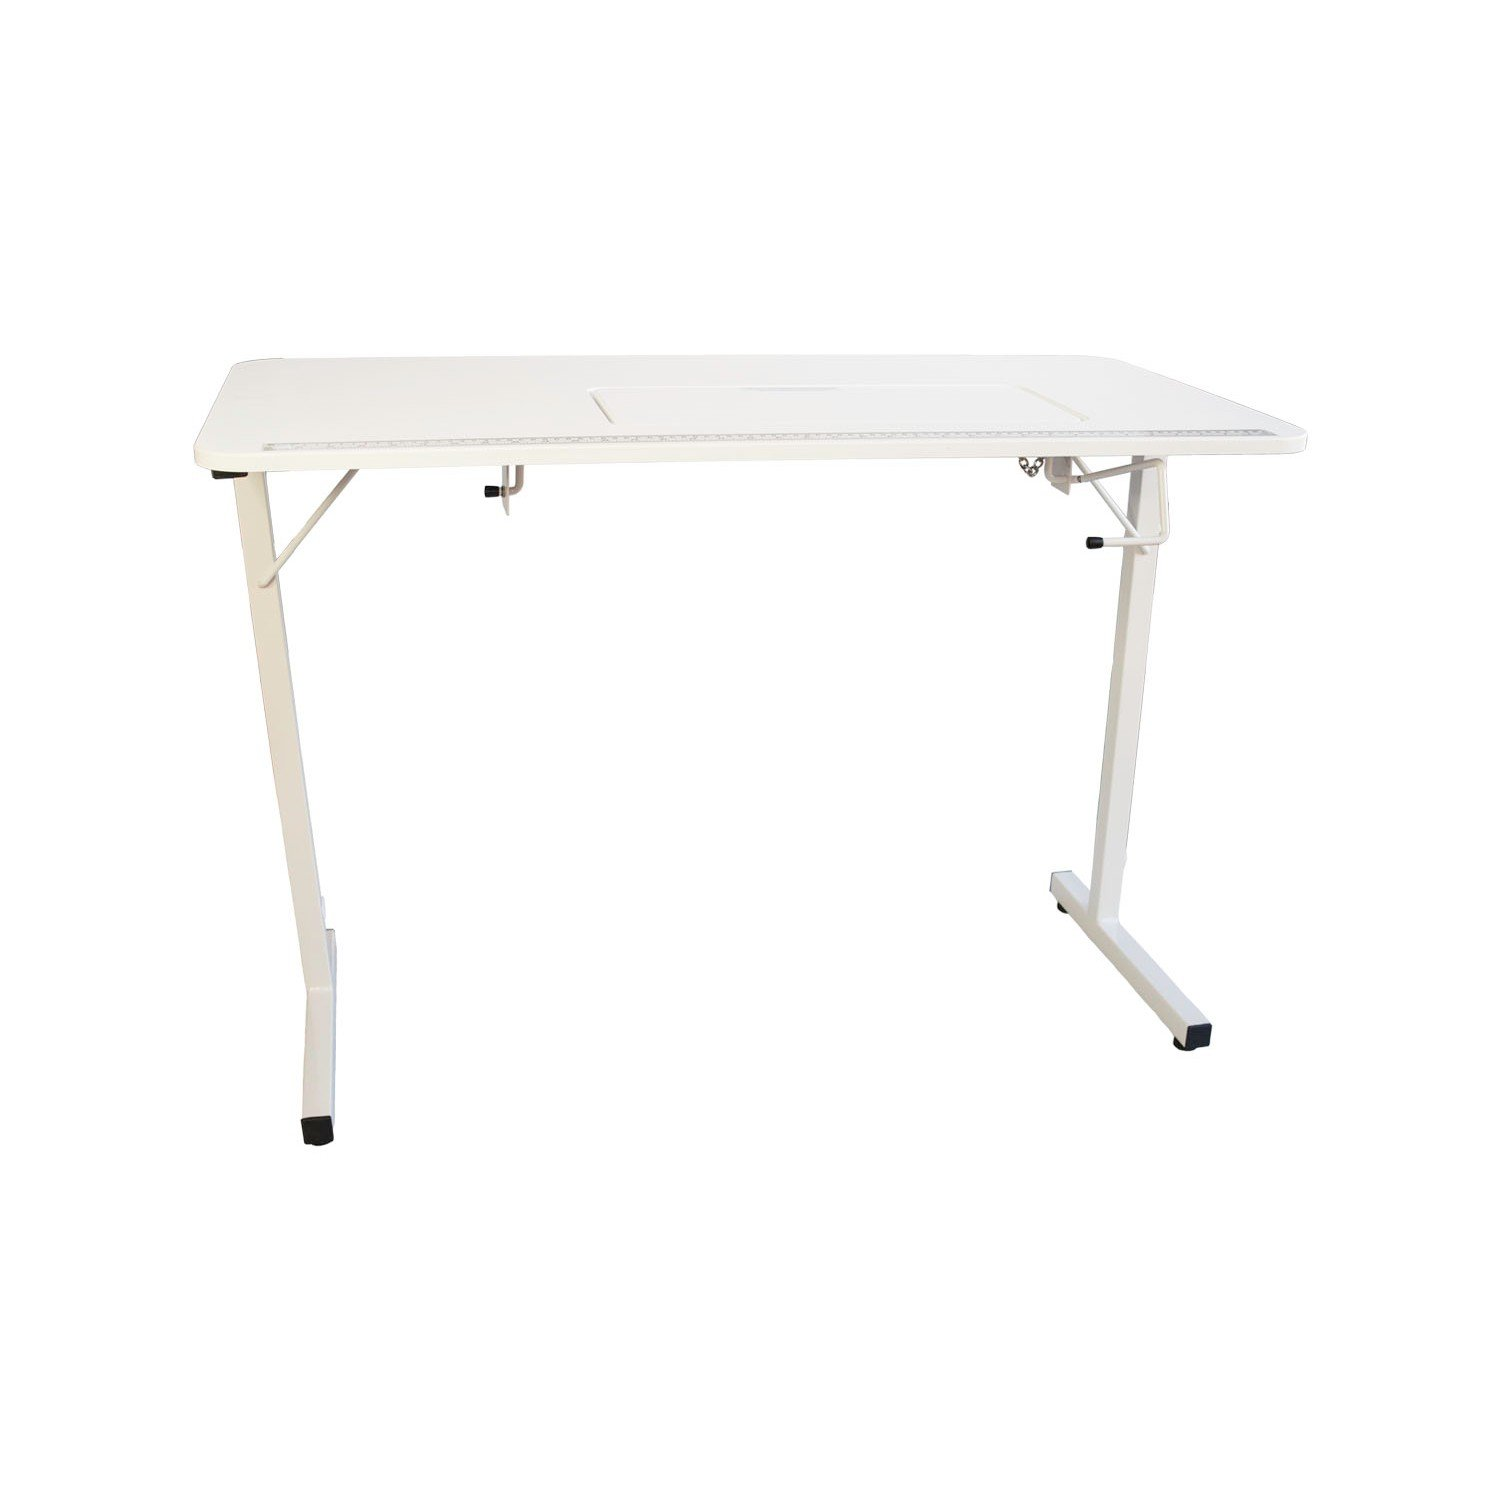 Sewingrite 626-SR-JTBAS Crafts Foldable Sewing Hobby Table